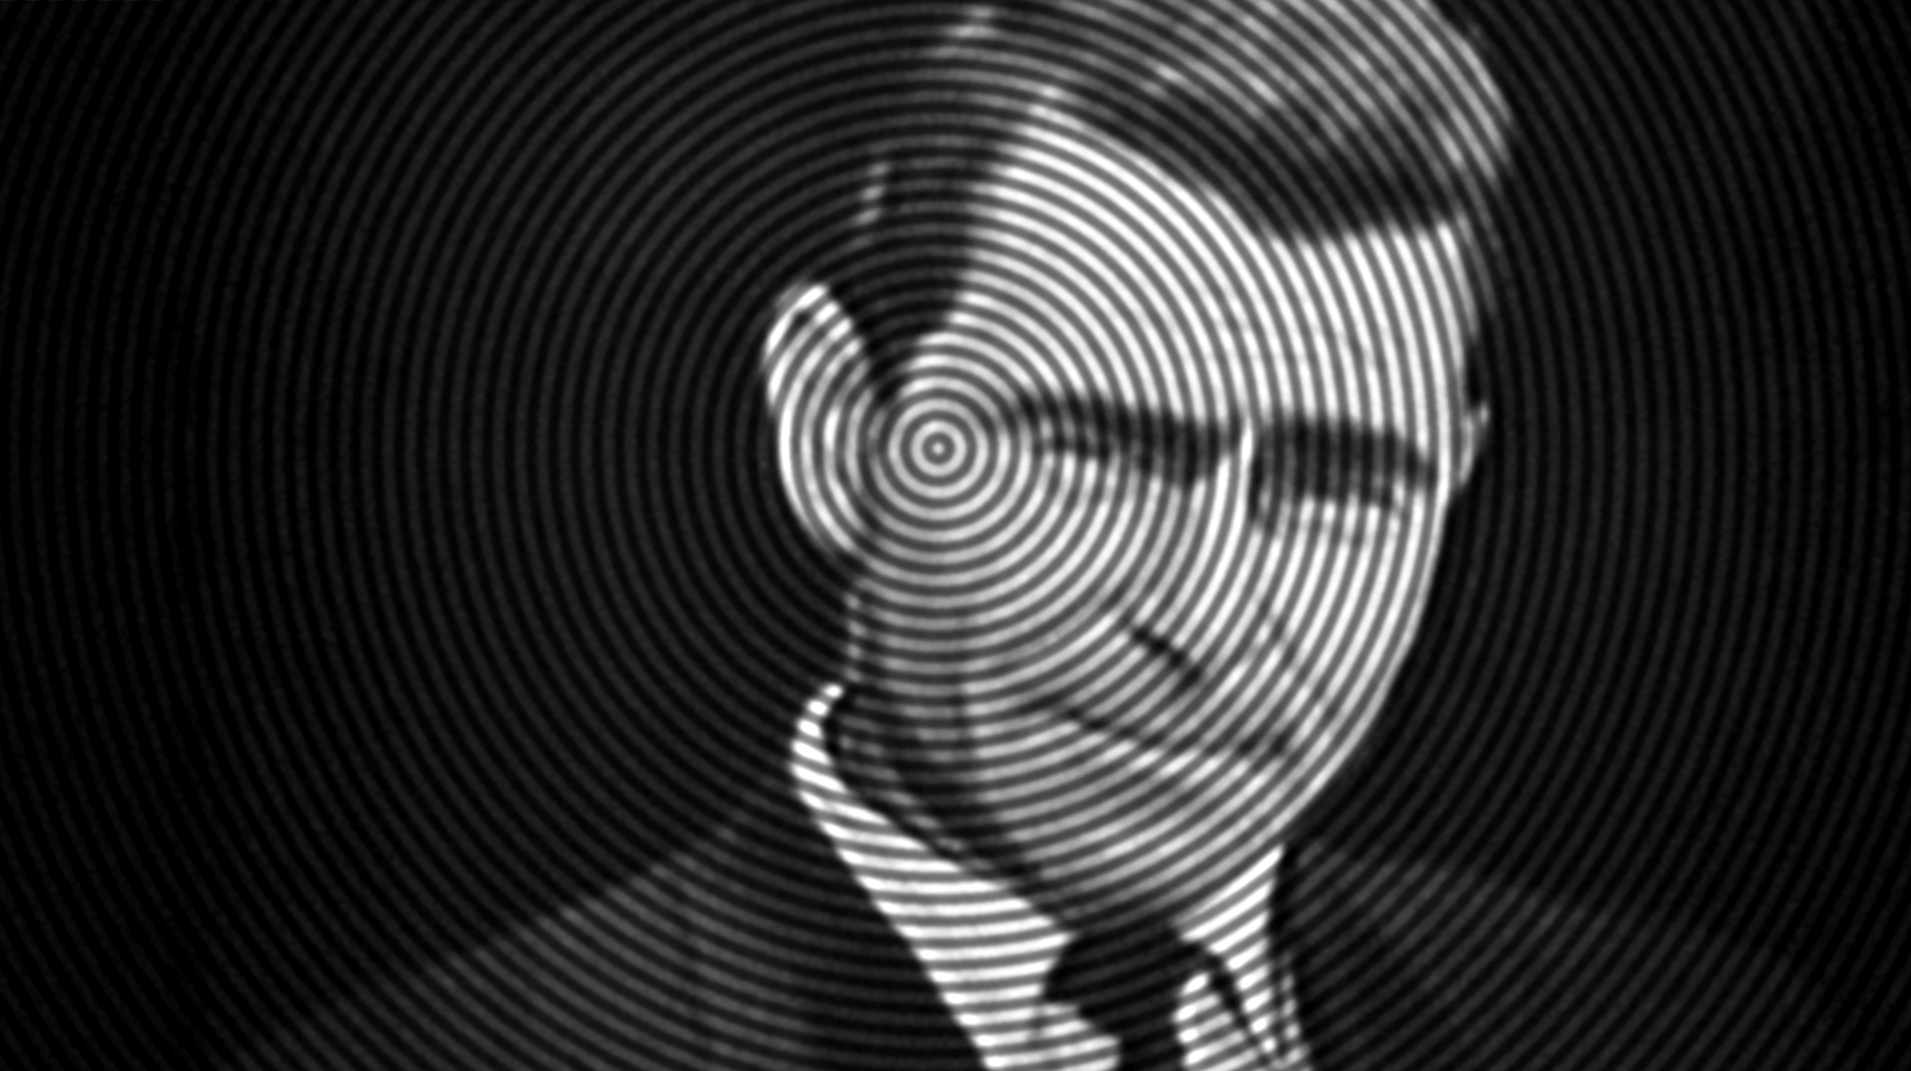 rod serling short storiesrod serling twilight zone, rod serling interview, rod serling mike wallace, rod serling quotes, rod serling's night gallery, rod serling wiki, rod serling height, rod serling books, rod serling biography, rod serling death, rod serling net worth, rod serling twilight zone intro, rod serling planet of the apes, rod serling patterns, rod serling wife, rod serling gravesite, rod serling religion, rod serling facts, rod serling museum, rod serling short stories